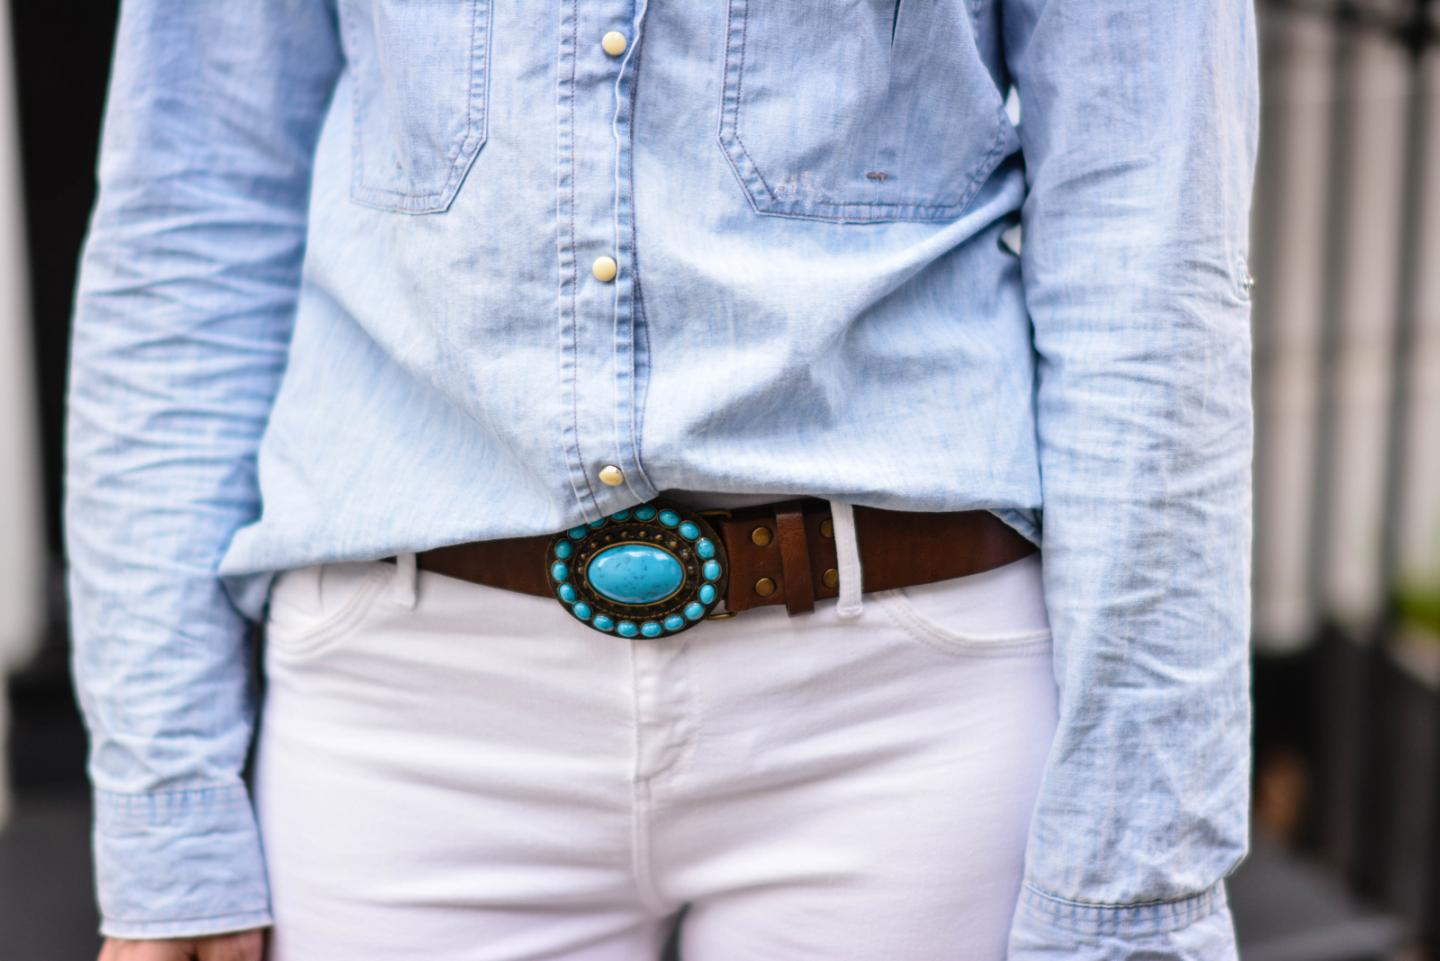 EJSTYLE - Emma Hill, River Island white skinny jeans, Topshop denim shirt, Turquoise brown leather belt